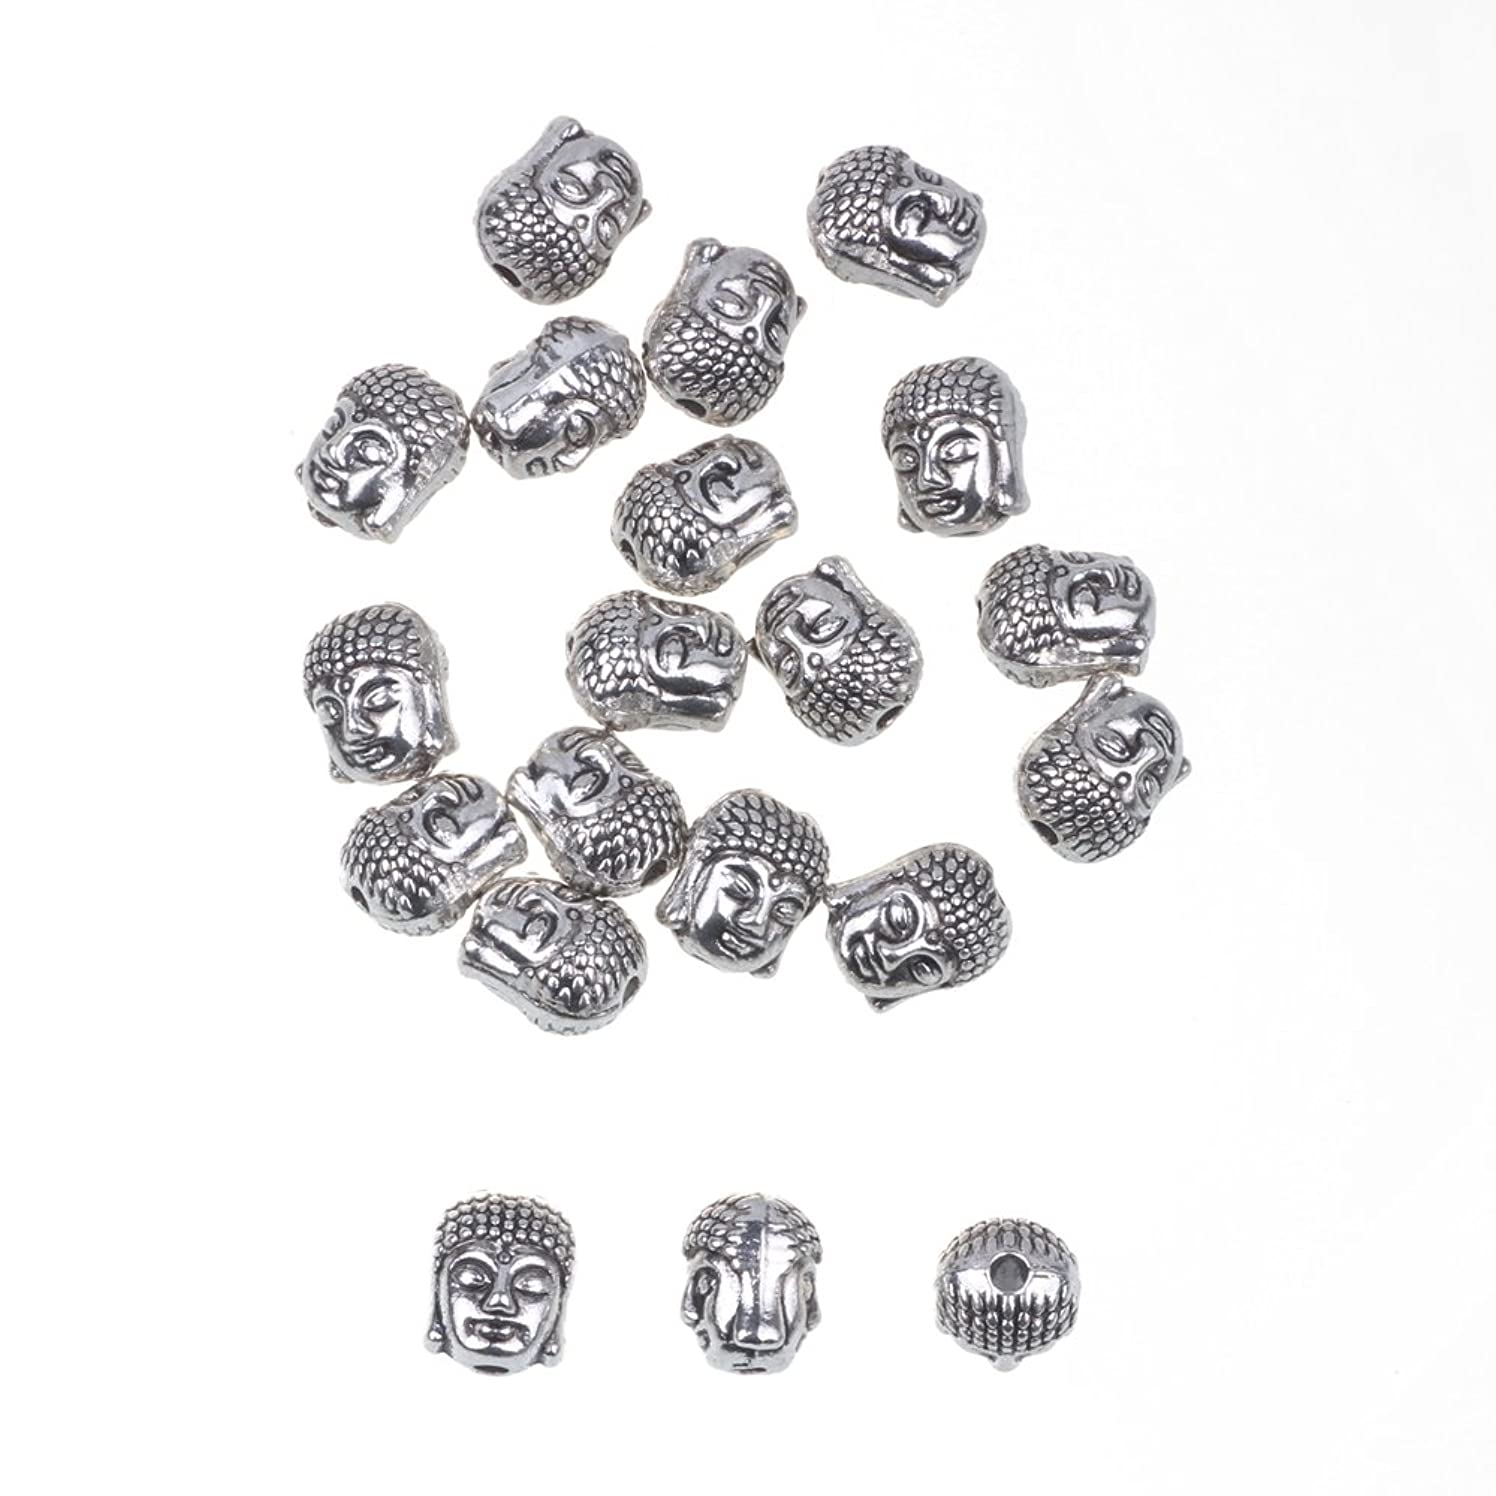 RUBYCA 40PCS Buddha Small Spiritual Metal Beads Silver Color Spacer for Jewelry Making Bracelet